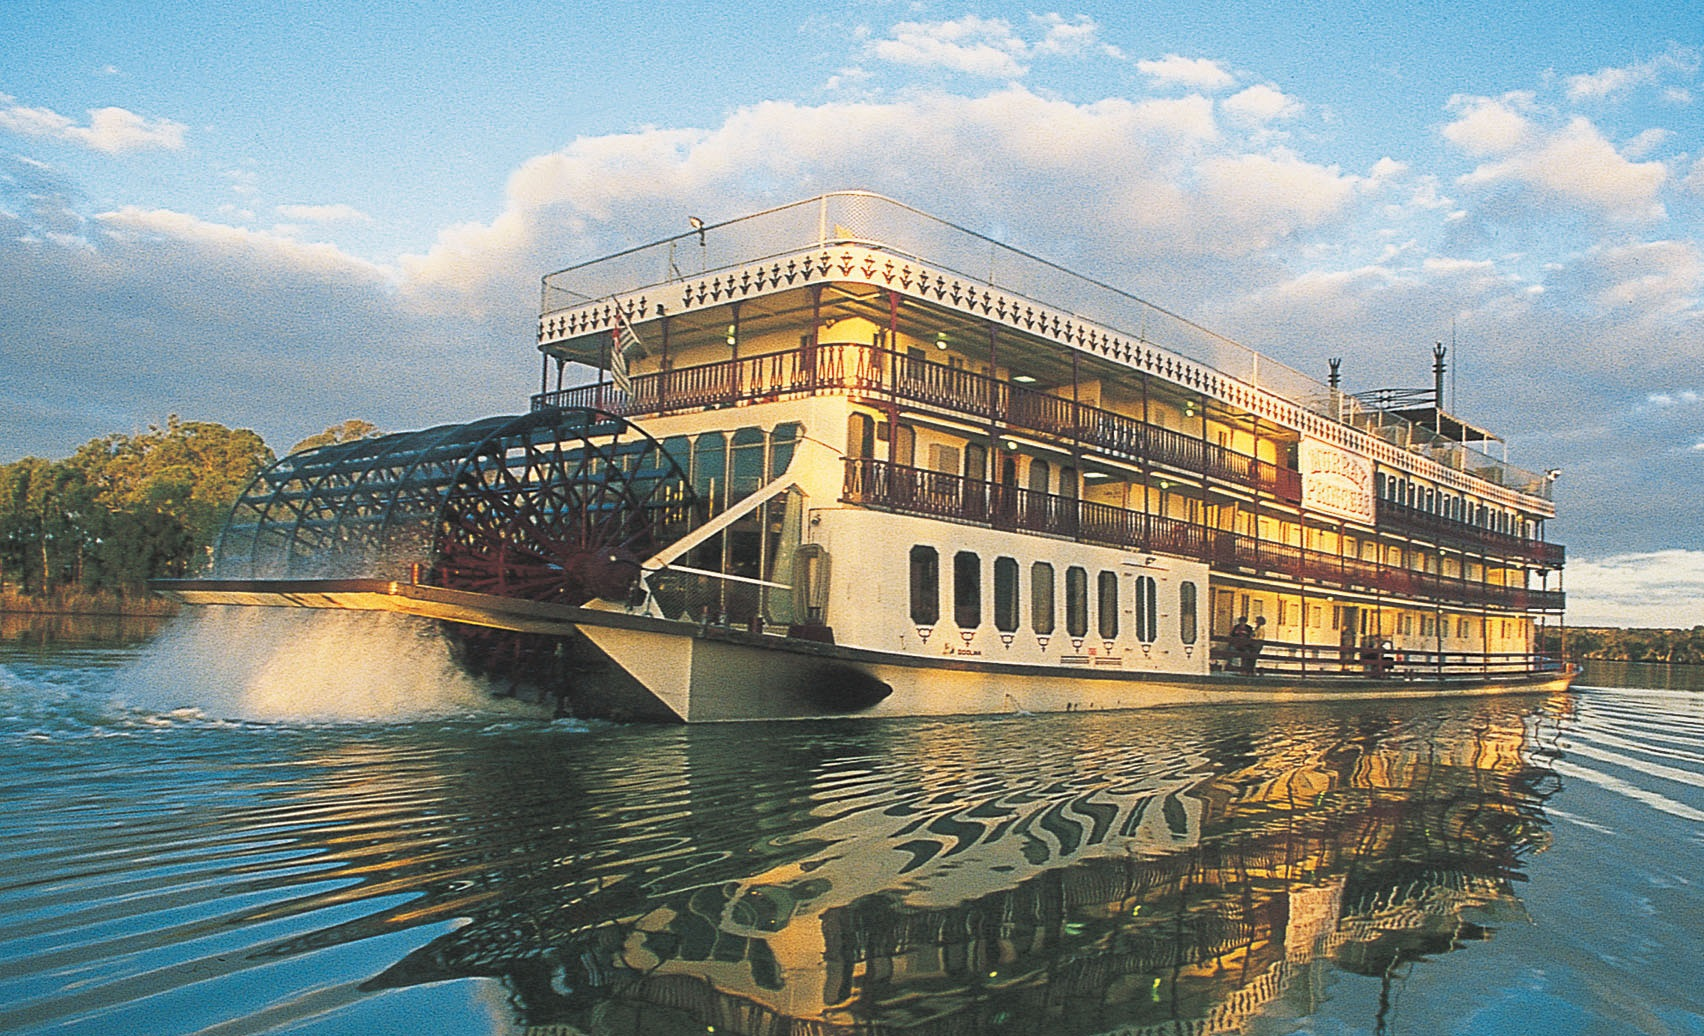 3 night murray river cruise captain cook cruises - HD 1704×1036